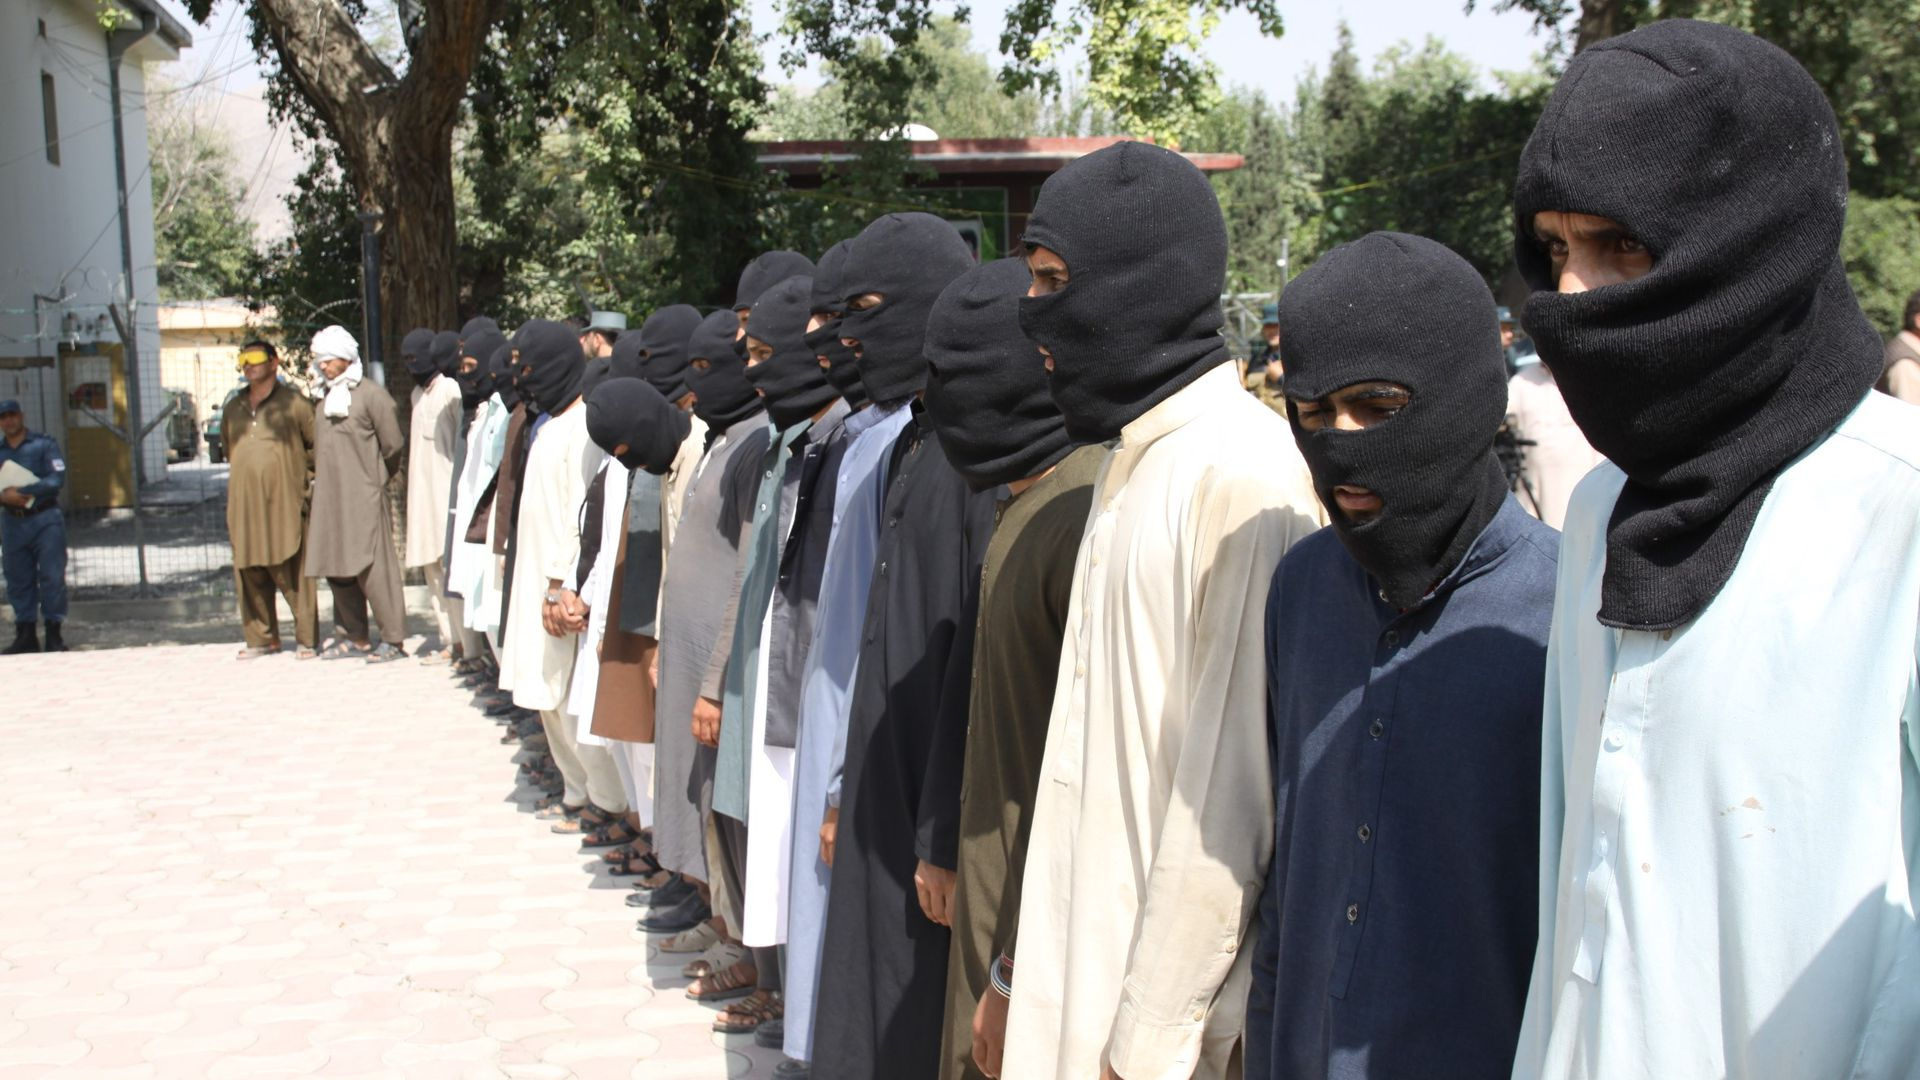 10 members of Daesh and 5 members of Taliban are seen unarmed as they captured by Afghan authorities.